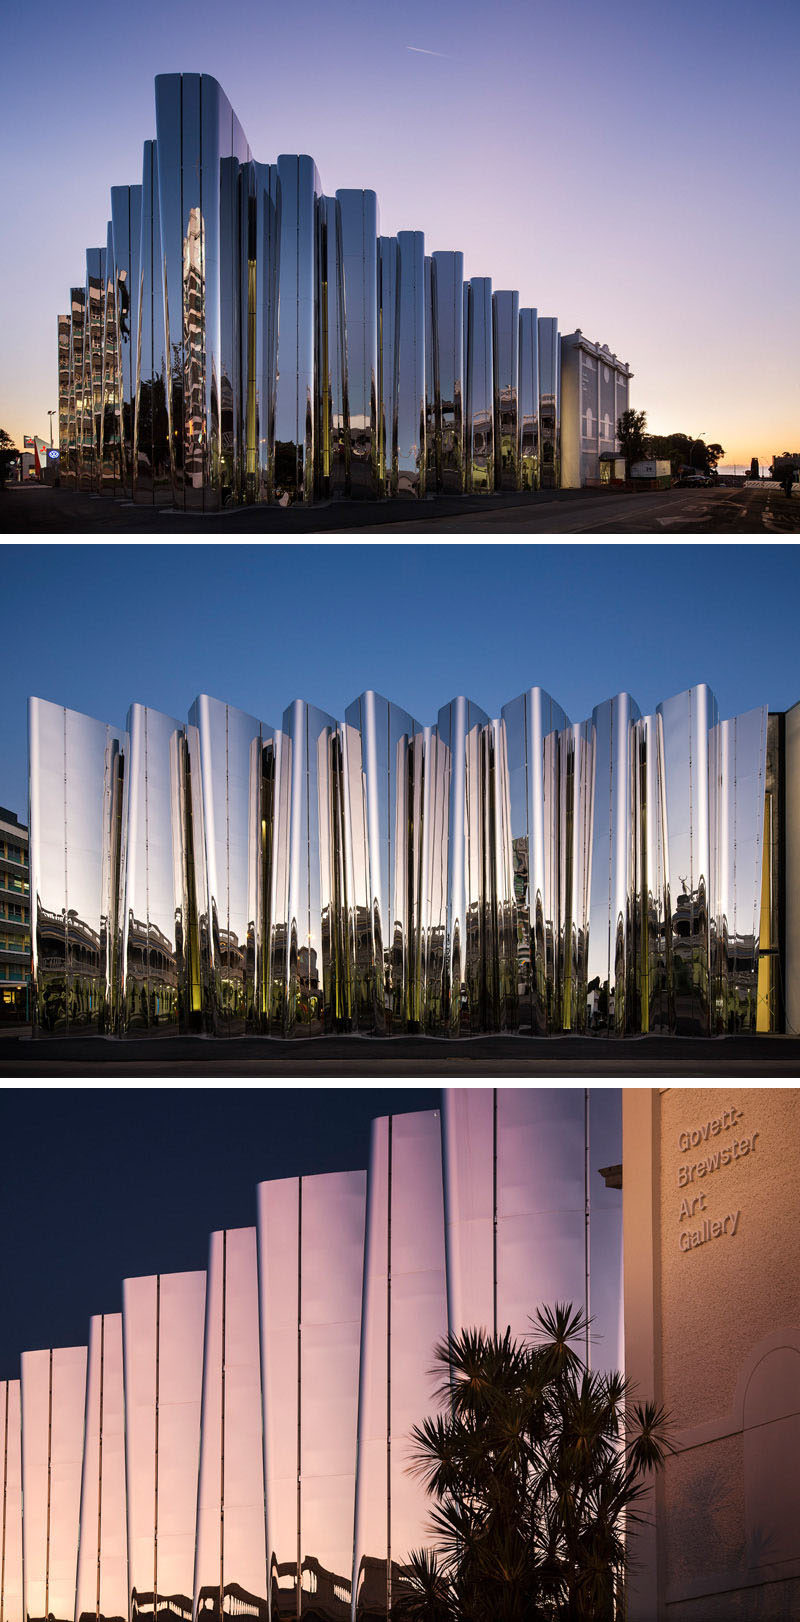 Curved, reflective stainless steel surrounds the exterior of the Len Lye Centre, a combined art museum with the Govett-Brewster Art Gallery in Taranaki, New Zealand, to create a unique visual experience without even stepping foot in the museum.